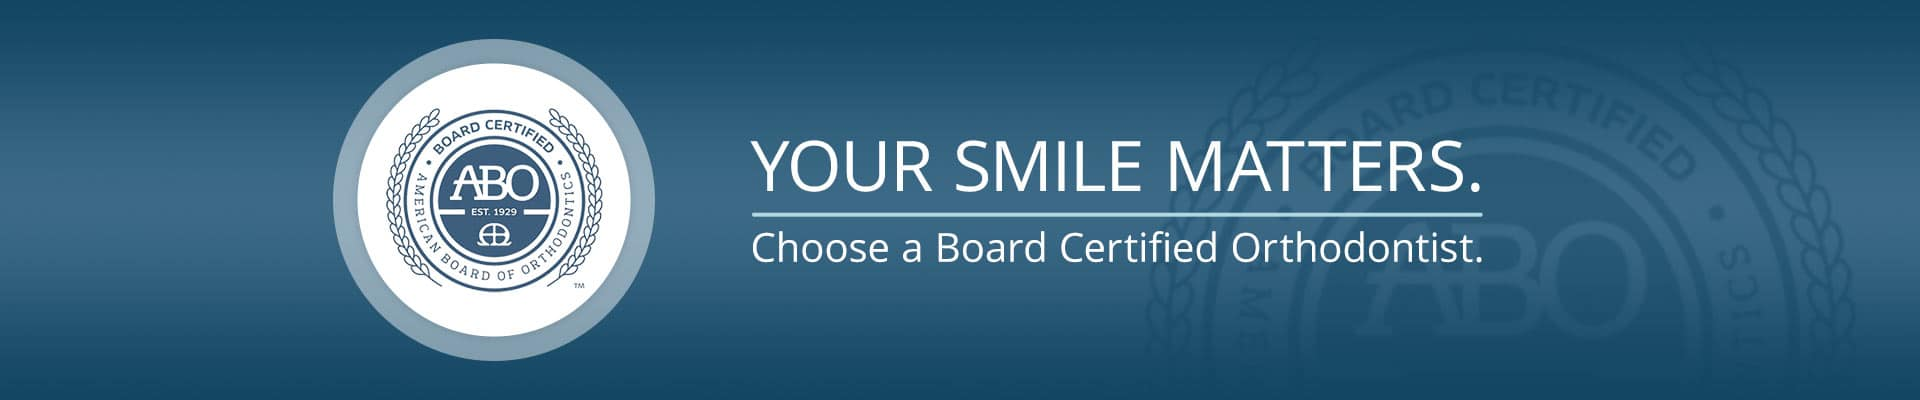 ABO 4 Your Smile Matters Davoody and Hablinski Orthodontics in Houston, TX